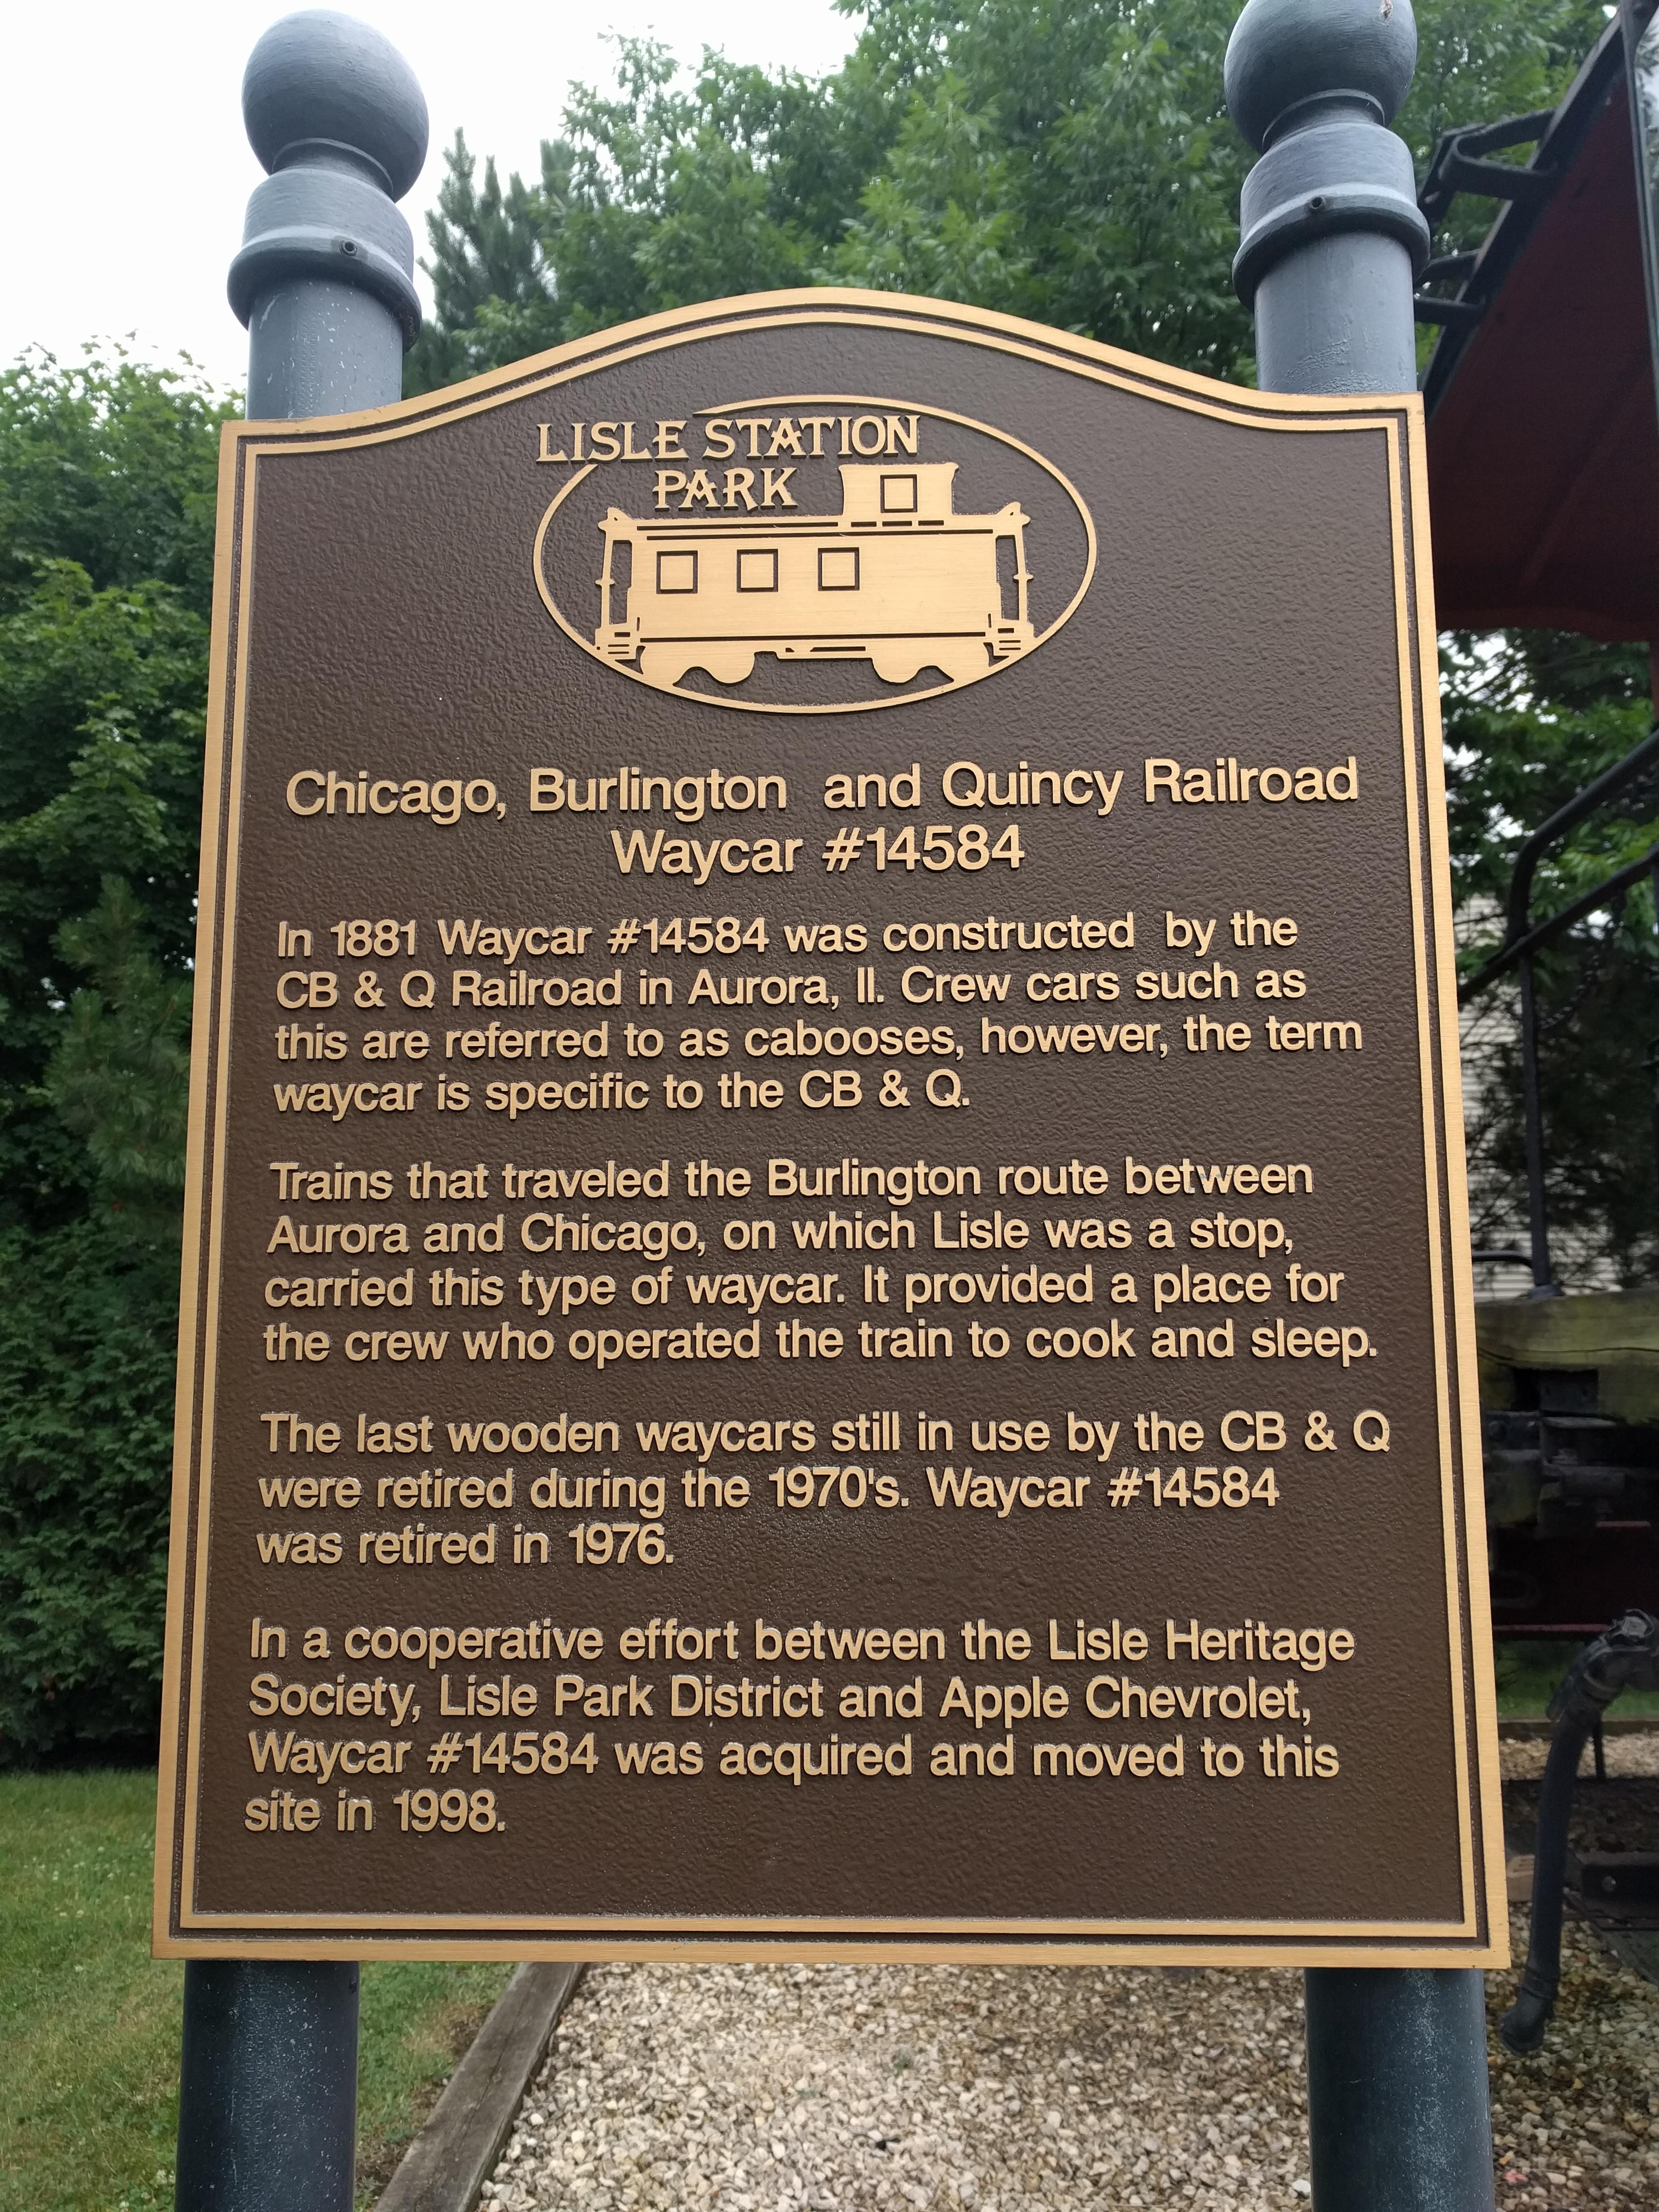 MLSP plaque about this caboose car